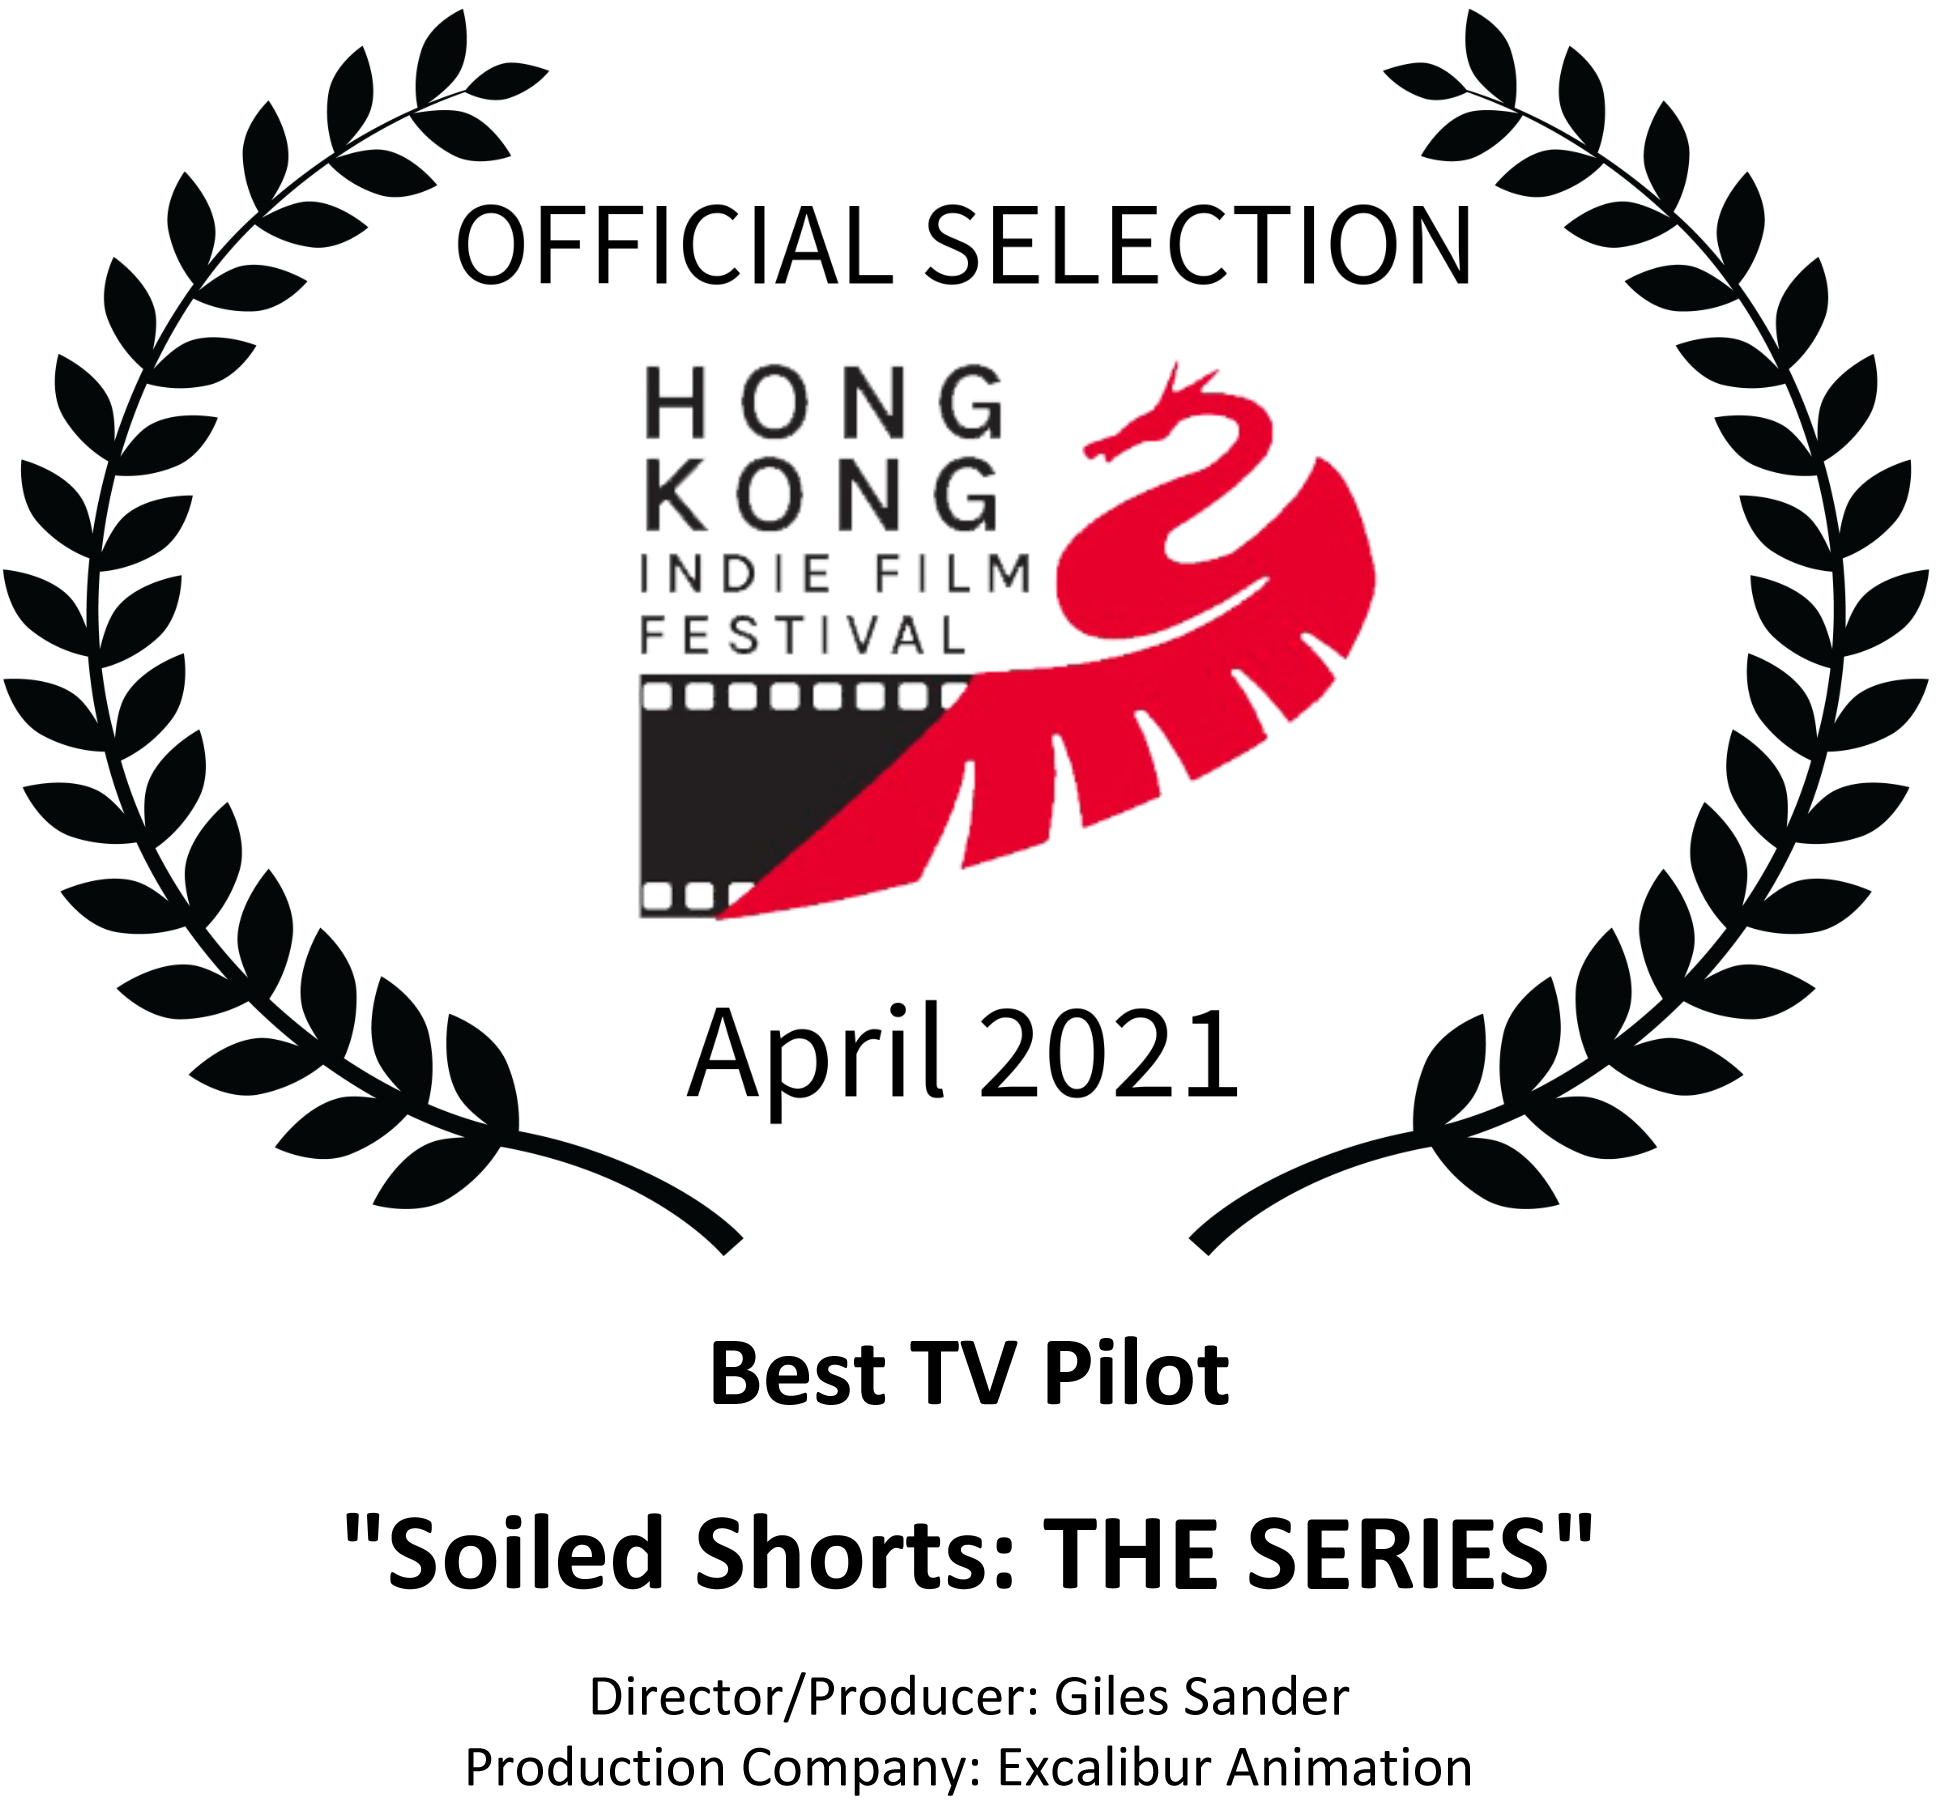 Official Selection - Hong Kong Indie Film Festival April 2021